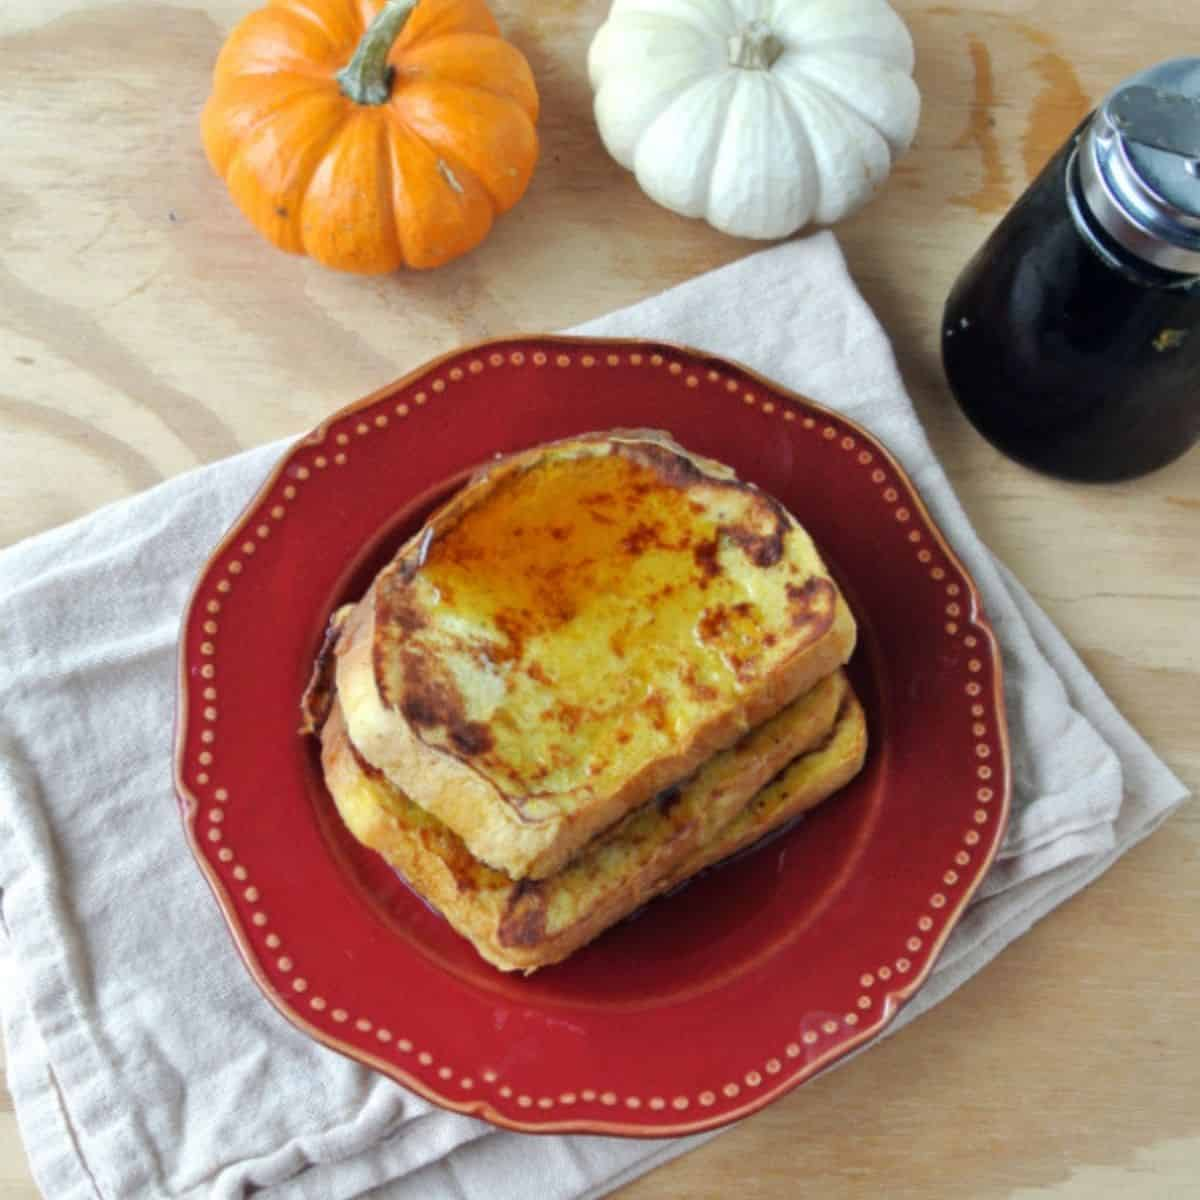 Three slices of pumpkin french toast on a red plate on top of a white towel. Nex to the plate is a container of maple syrup, 1 orange mini pumpkin, and 1 white mini pumpkin